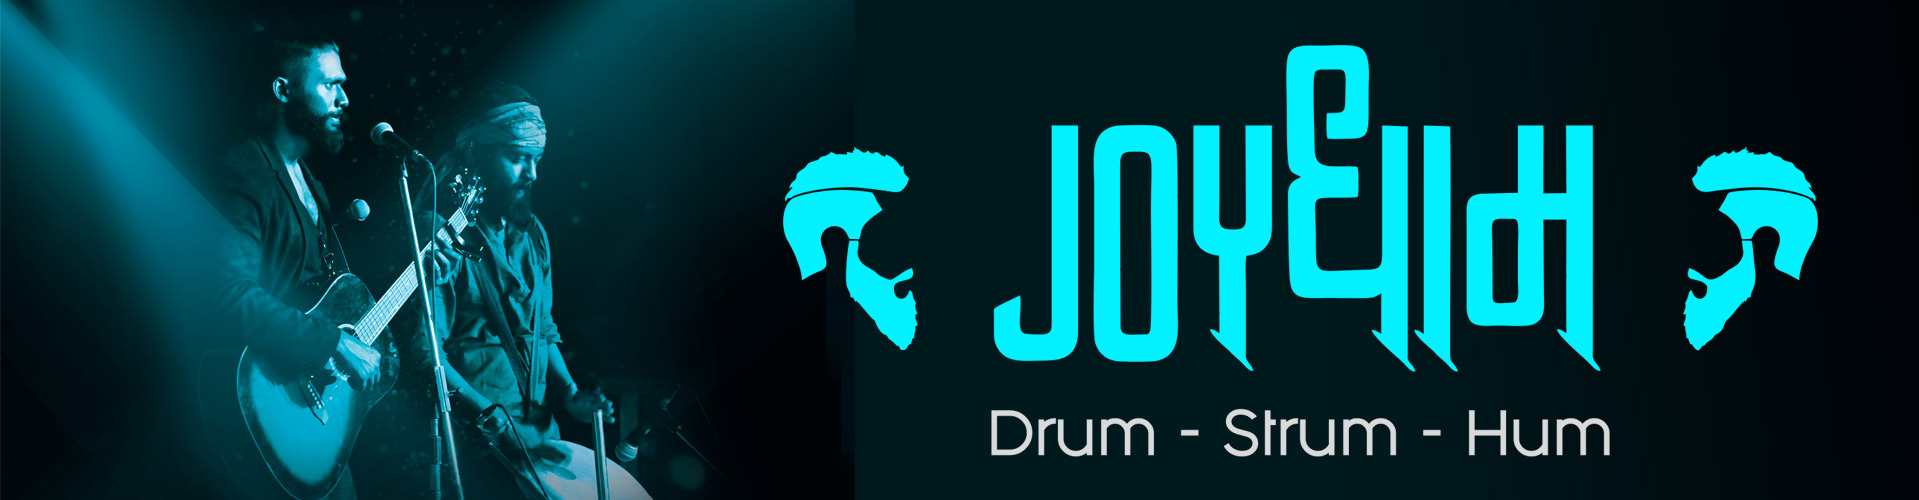 Joydham Official Merchandise on Adimanav.com